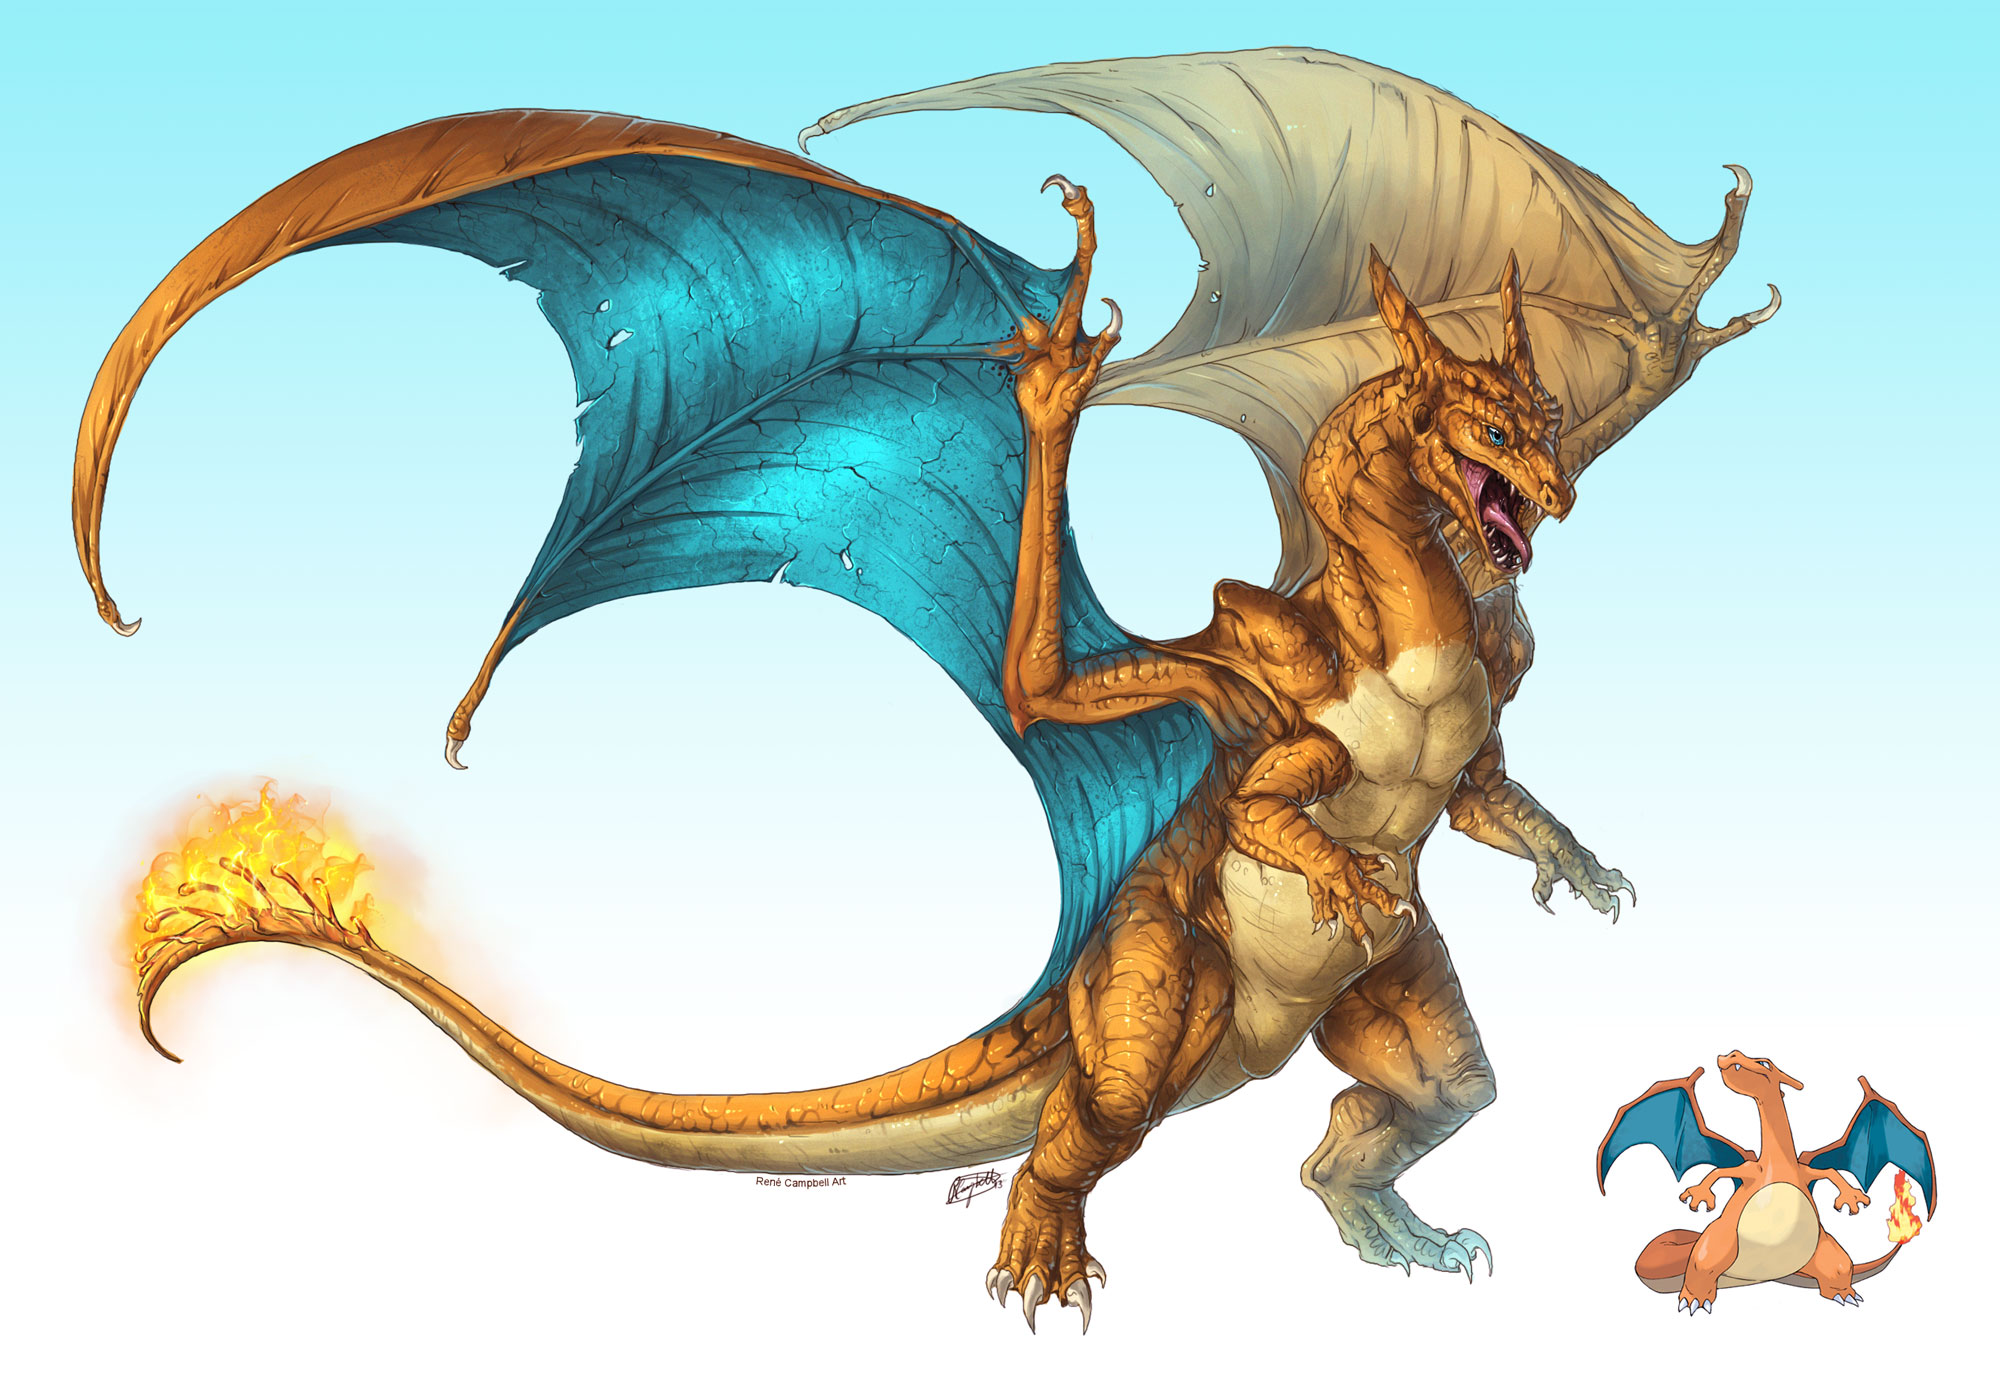 Pubg By Sodano On Deviantart: Realistic Pokemon: Charizard By ReneCampbellArt On DeviantArt